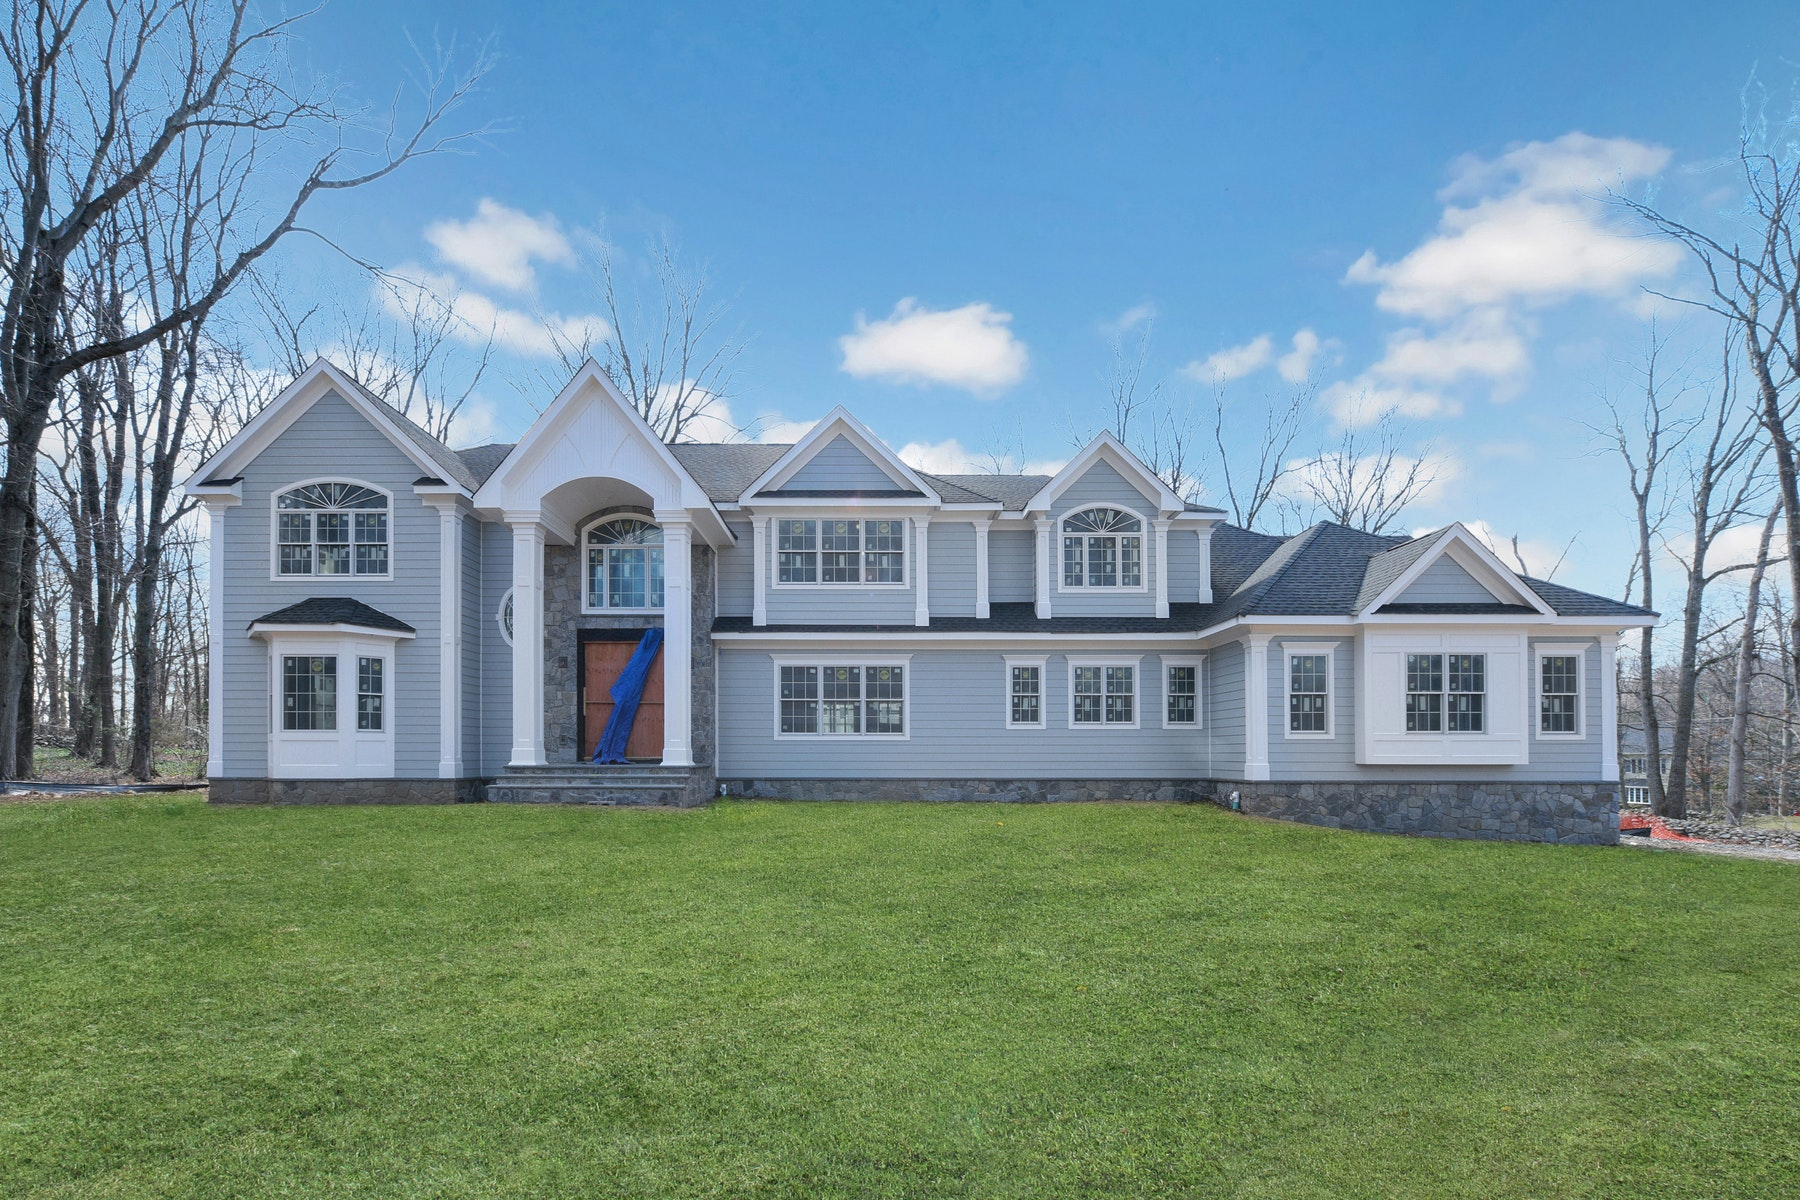 Single Family Homes for Sale at FABULOUS NEW CONSTRUCTION 24 Robin Ridge Rd, Upper Saddle River, New Jersey 07458 United States